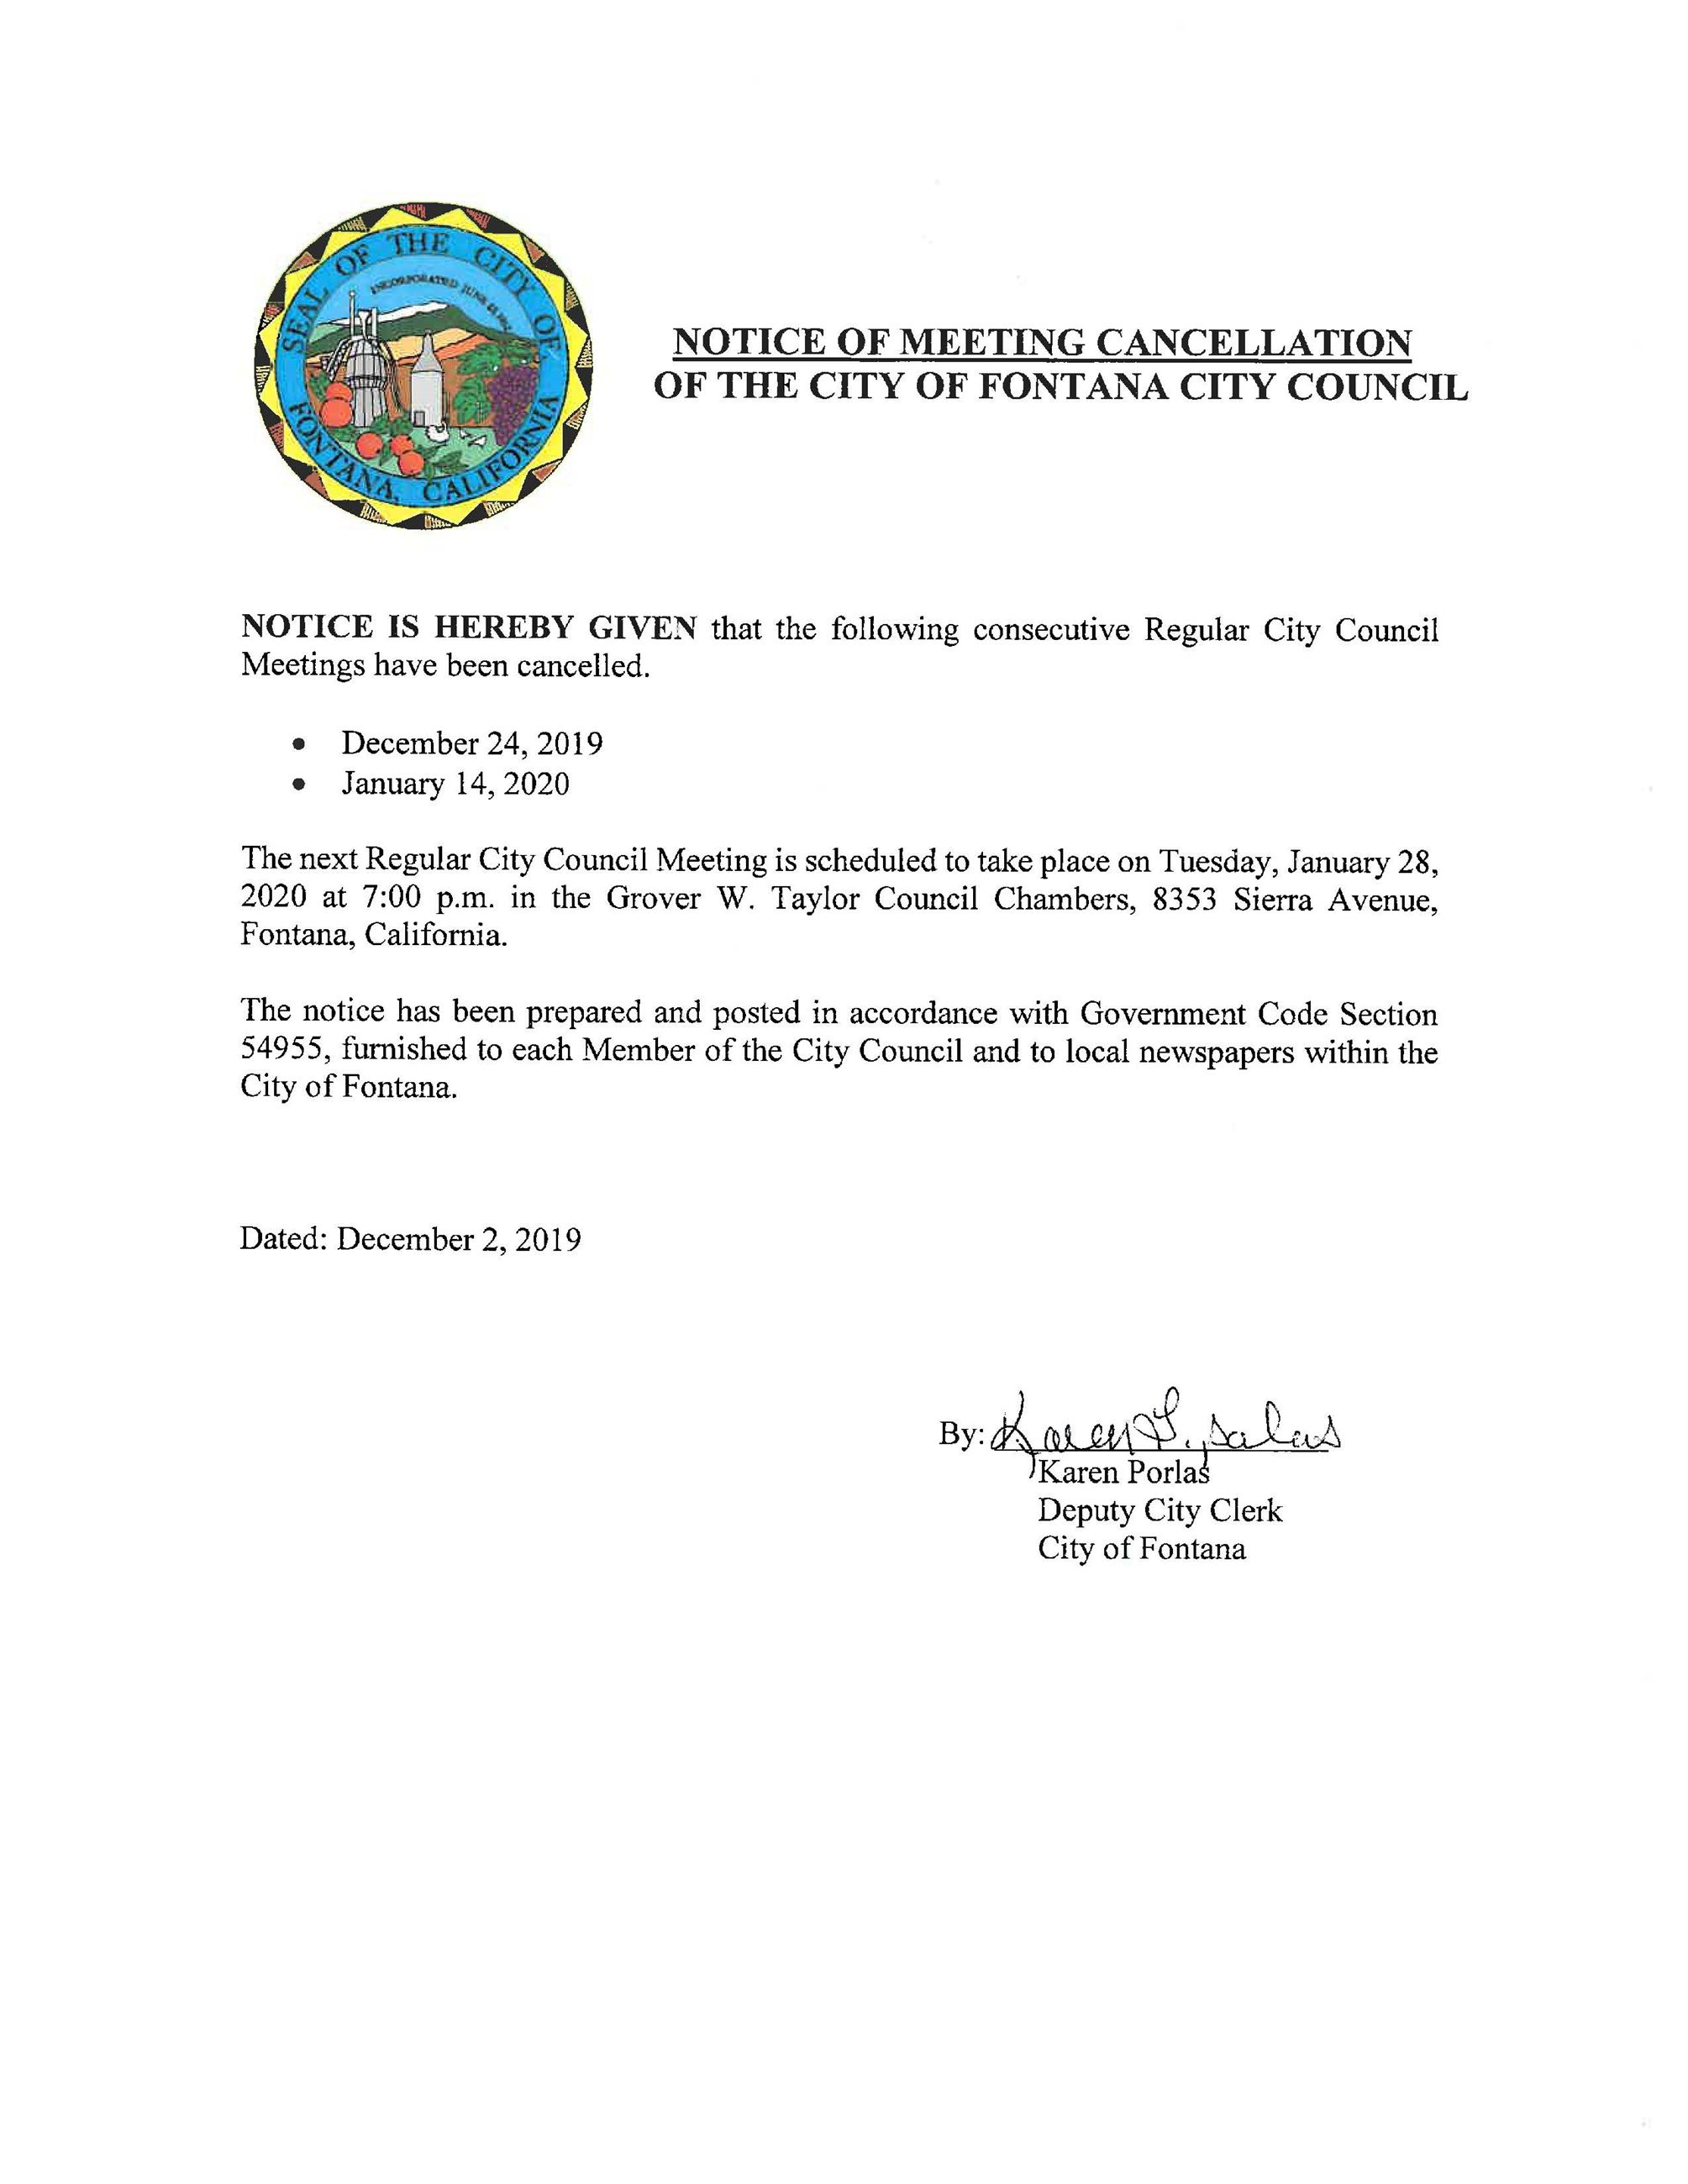 Notice of Cancellation - Dec 24 2019 and Jan 14 2020